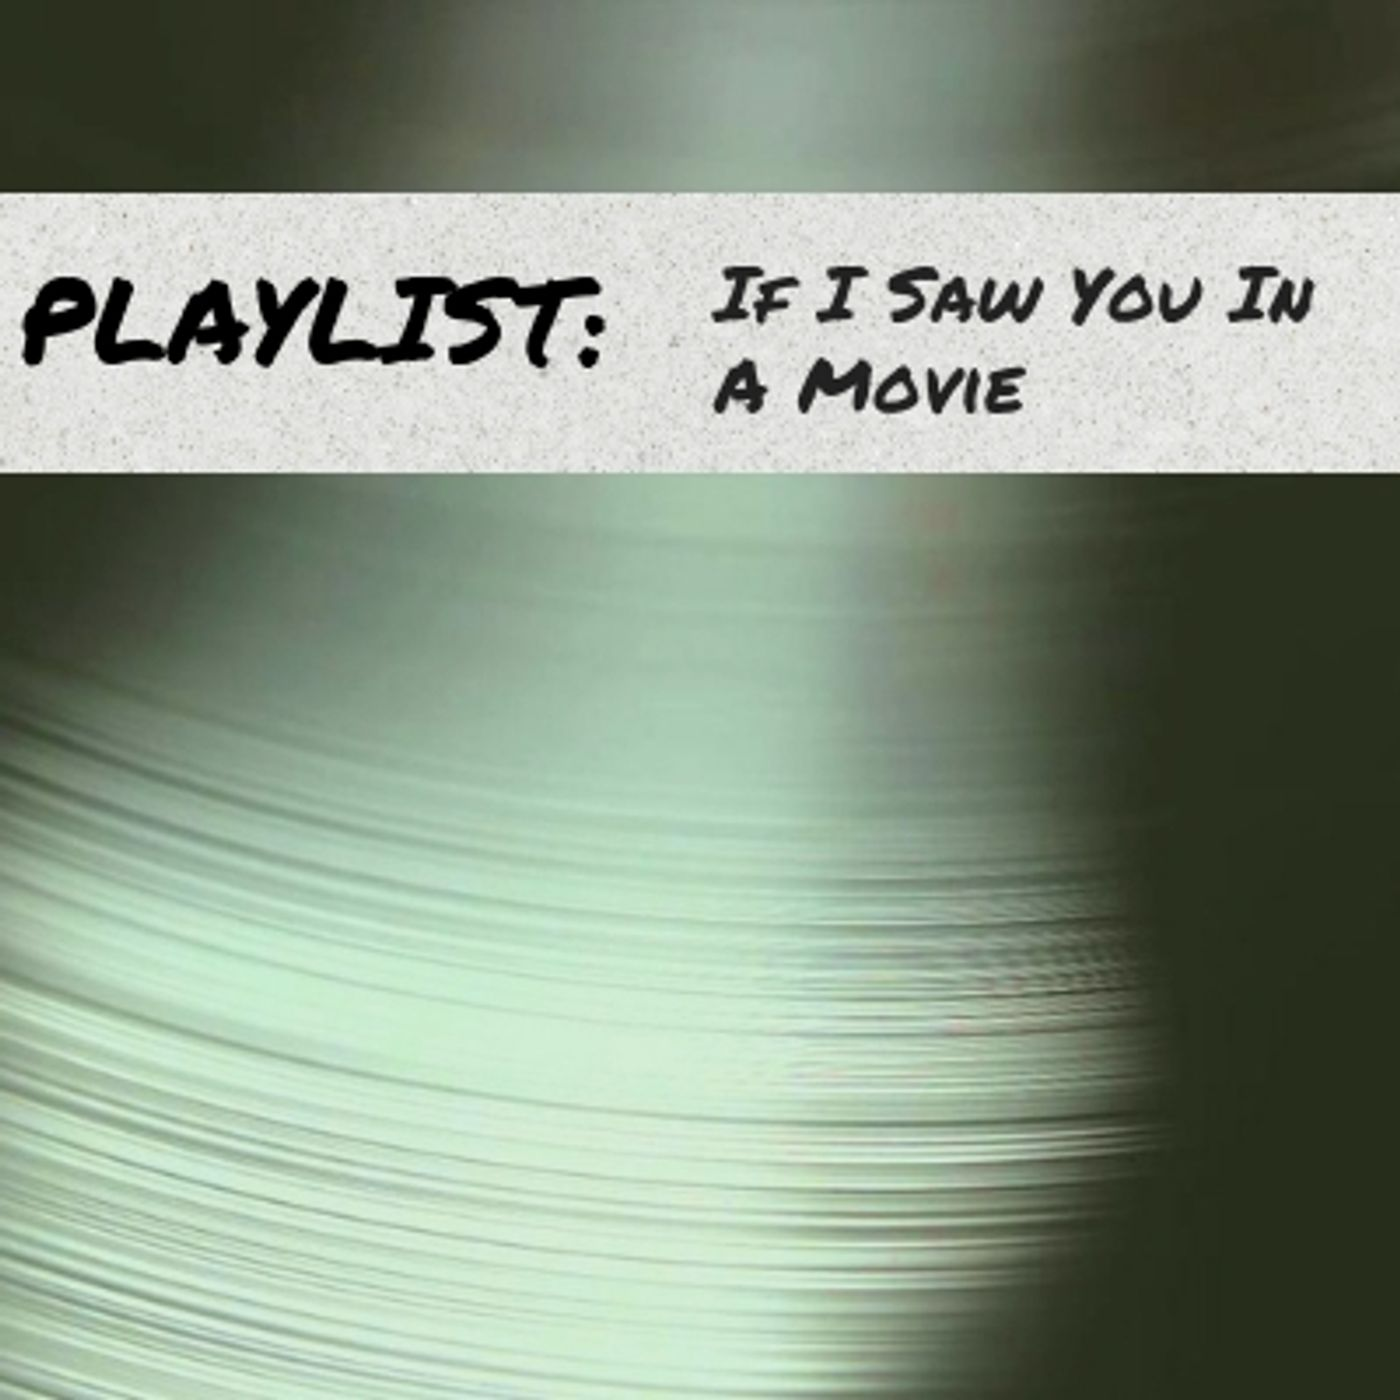 5.7 If I Saw You in a Movie